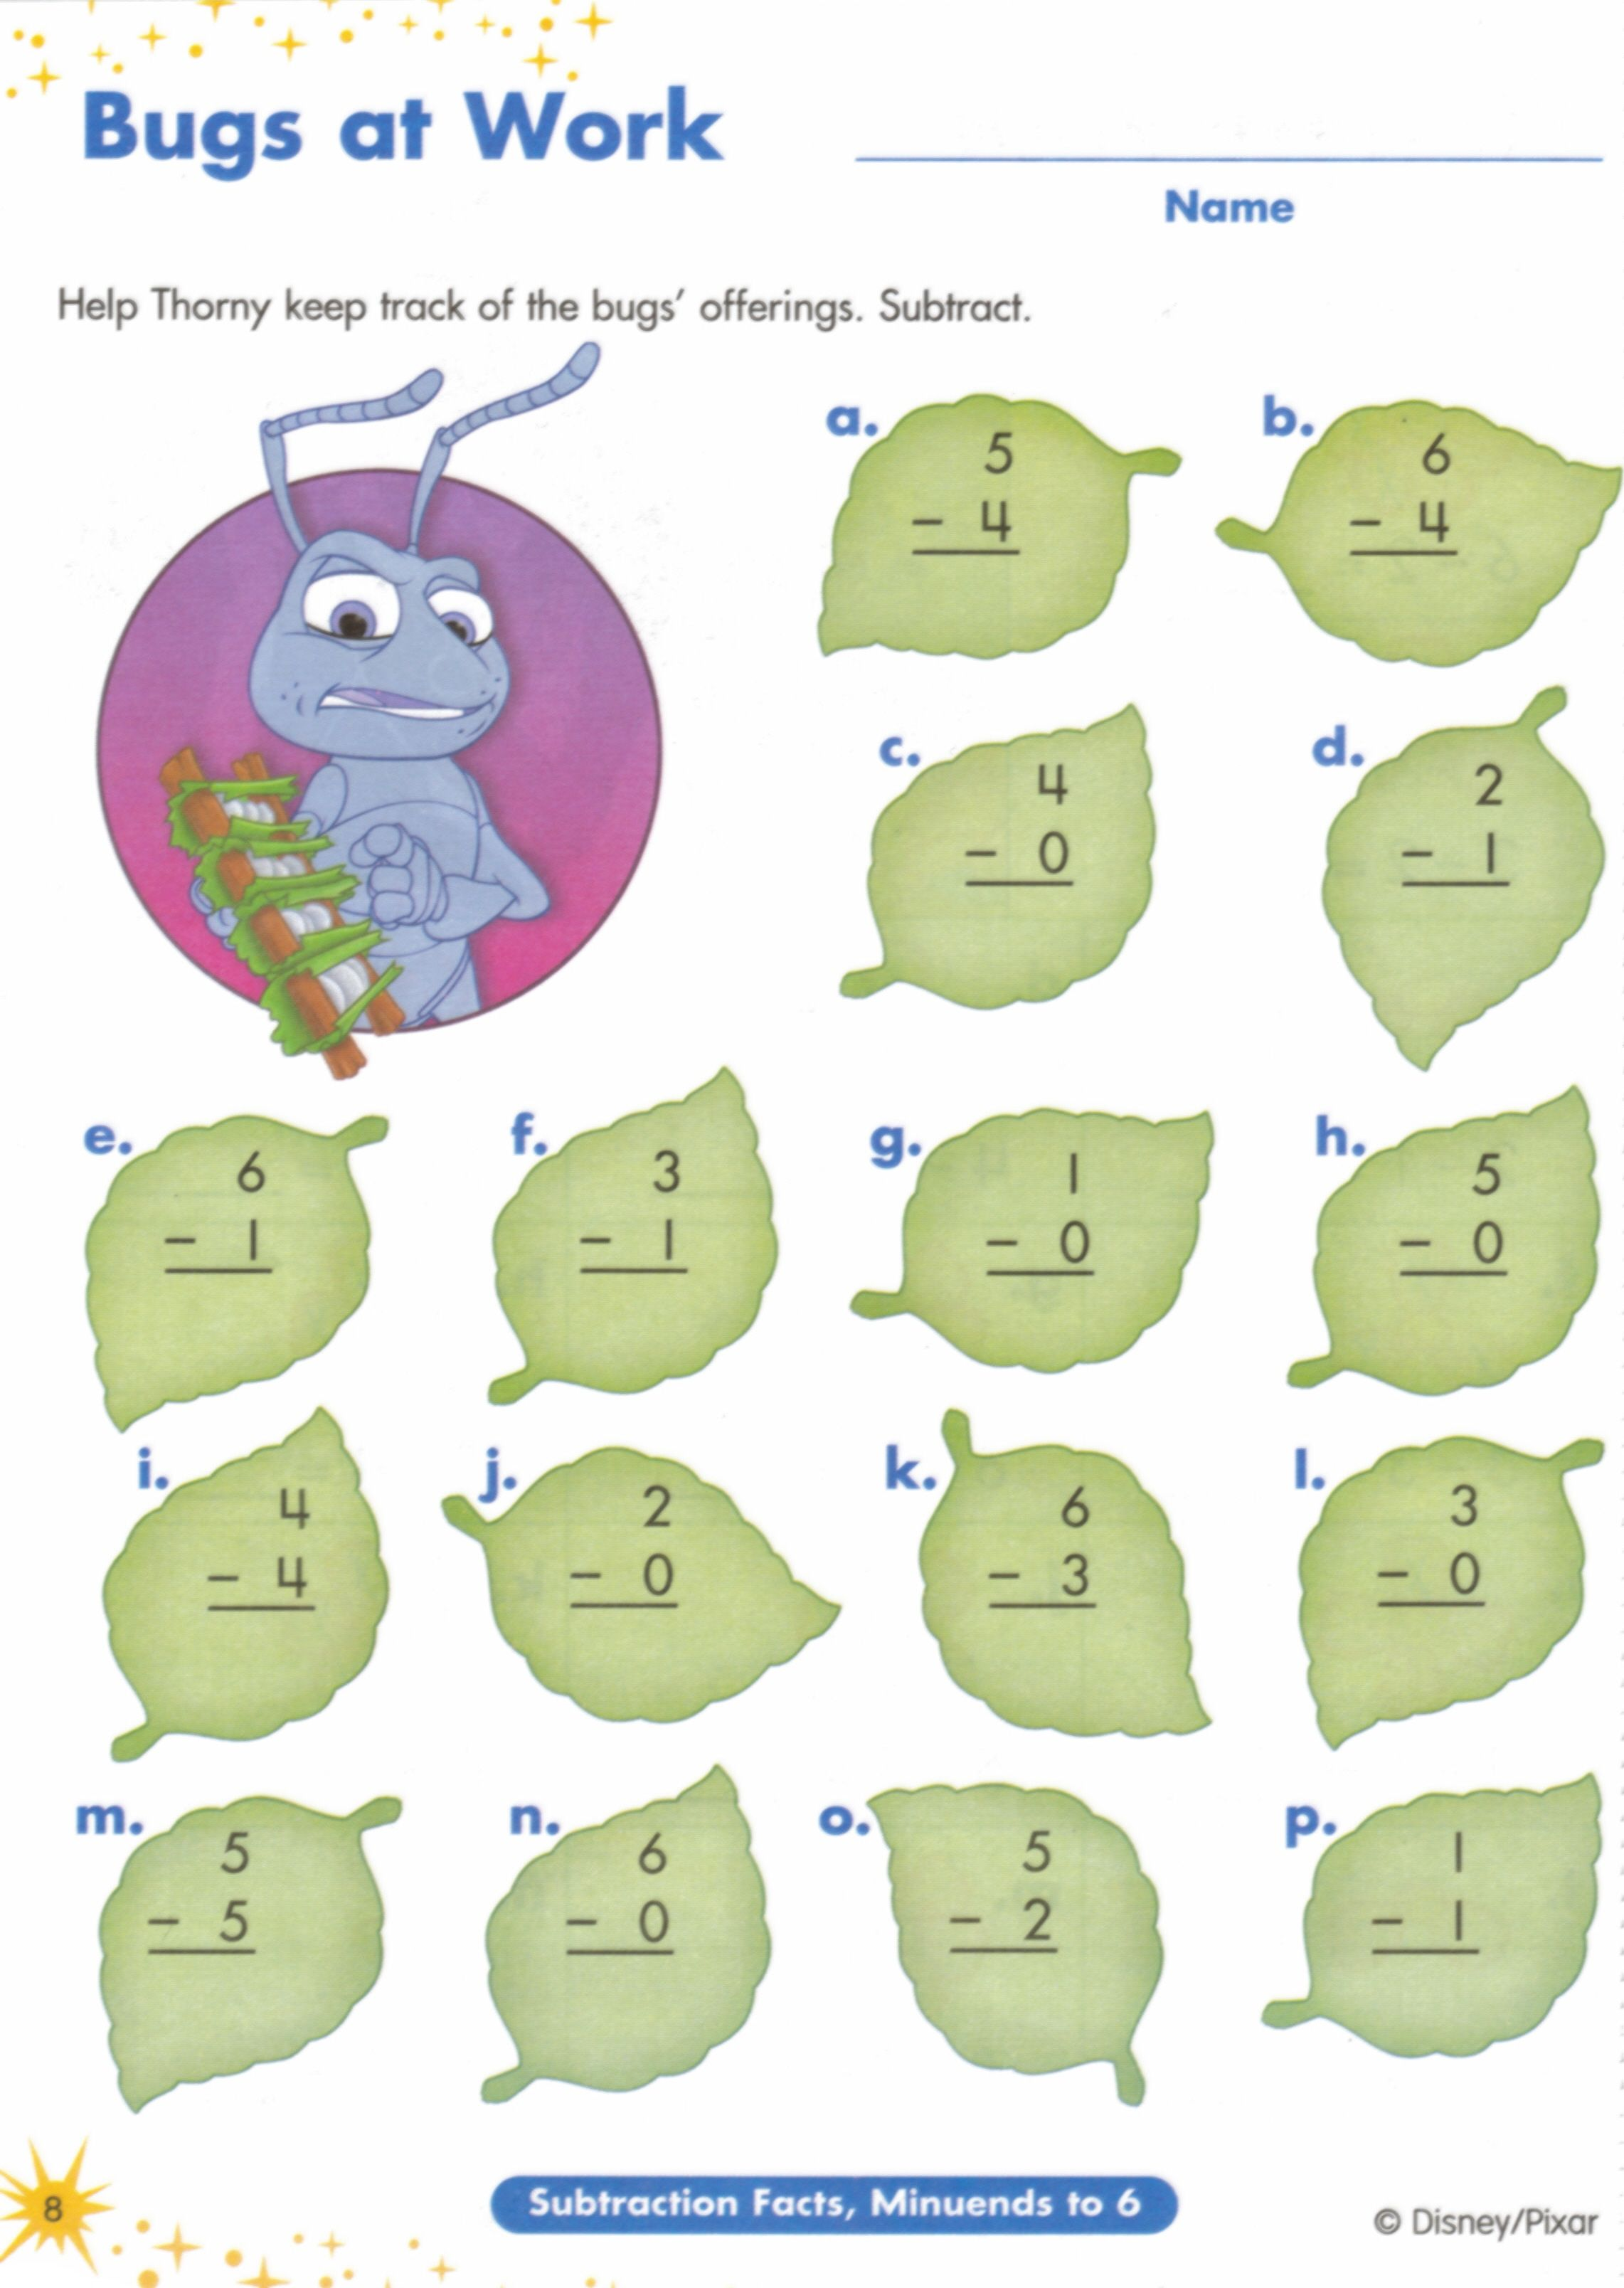 Proatmealus  Winning  Images About Worksheets On Pinterest  Fun Facts For Kids  With Remarkable  Images About Worksheets On Pinterest  Fun Facts For Kids Earth Day Worksheets And Jungles With Endearing Family Budget Worksheets Also  More  Less Worksheet In Addition Operations With Negative Numbers Worksheet And Parallel Line Worksheets As Well As Excel Worksheet Protection Additionally Map Grid Worksheet From Pinterestcom With Proatmealus  Remarkable  Images About Worksheets On Pinterest  Fun Facts For Kids  With Endearing  Images About Worksheets On Pinterest  Fun Facts For Kids Earth Day Worksheets And Jungles And Winning Family Budget Worksheets Also  More  Less Worksheet In Addition Operations With Negative Numbers Worksheet From Pinterestcom